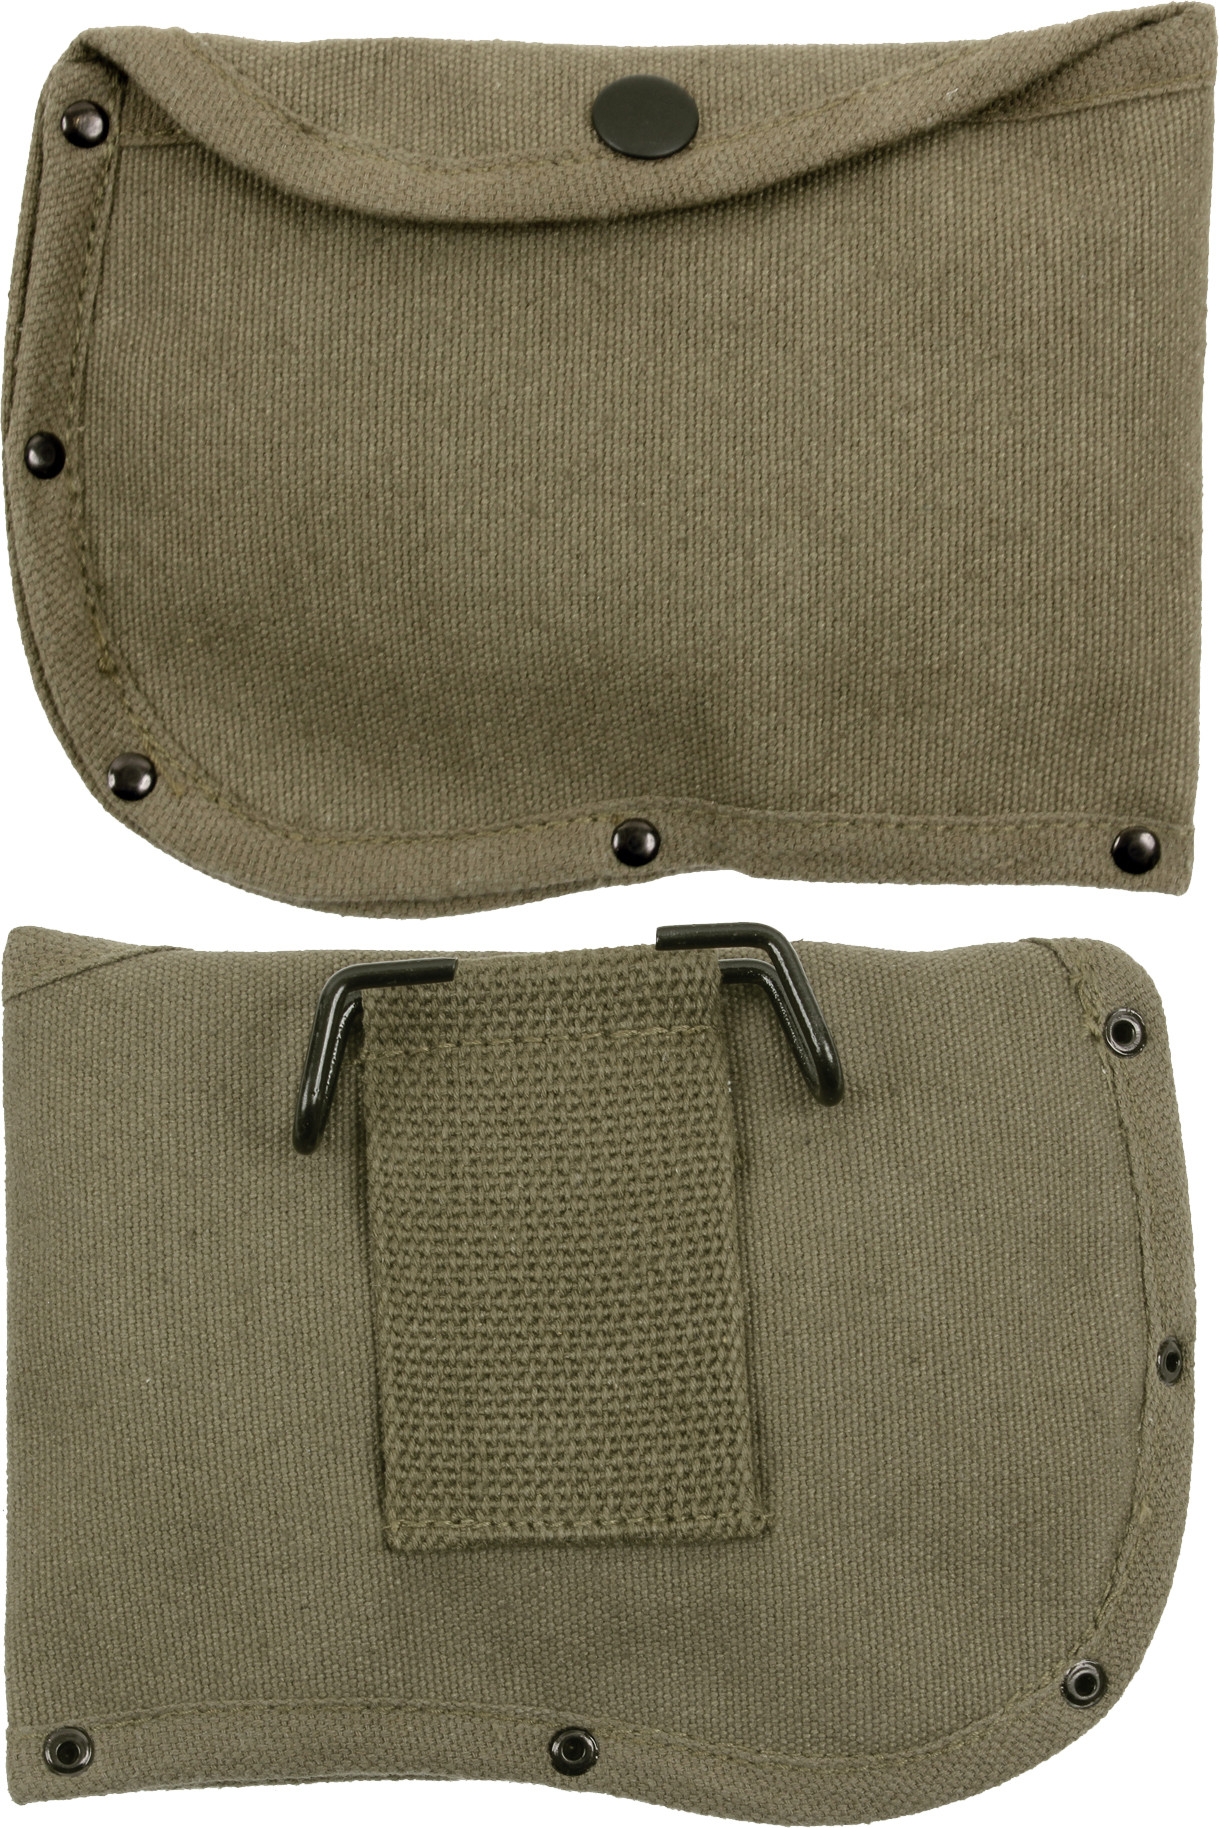 olive drab canvas 6 camping side axe sheath with belt loop